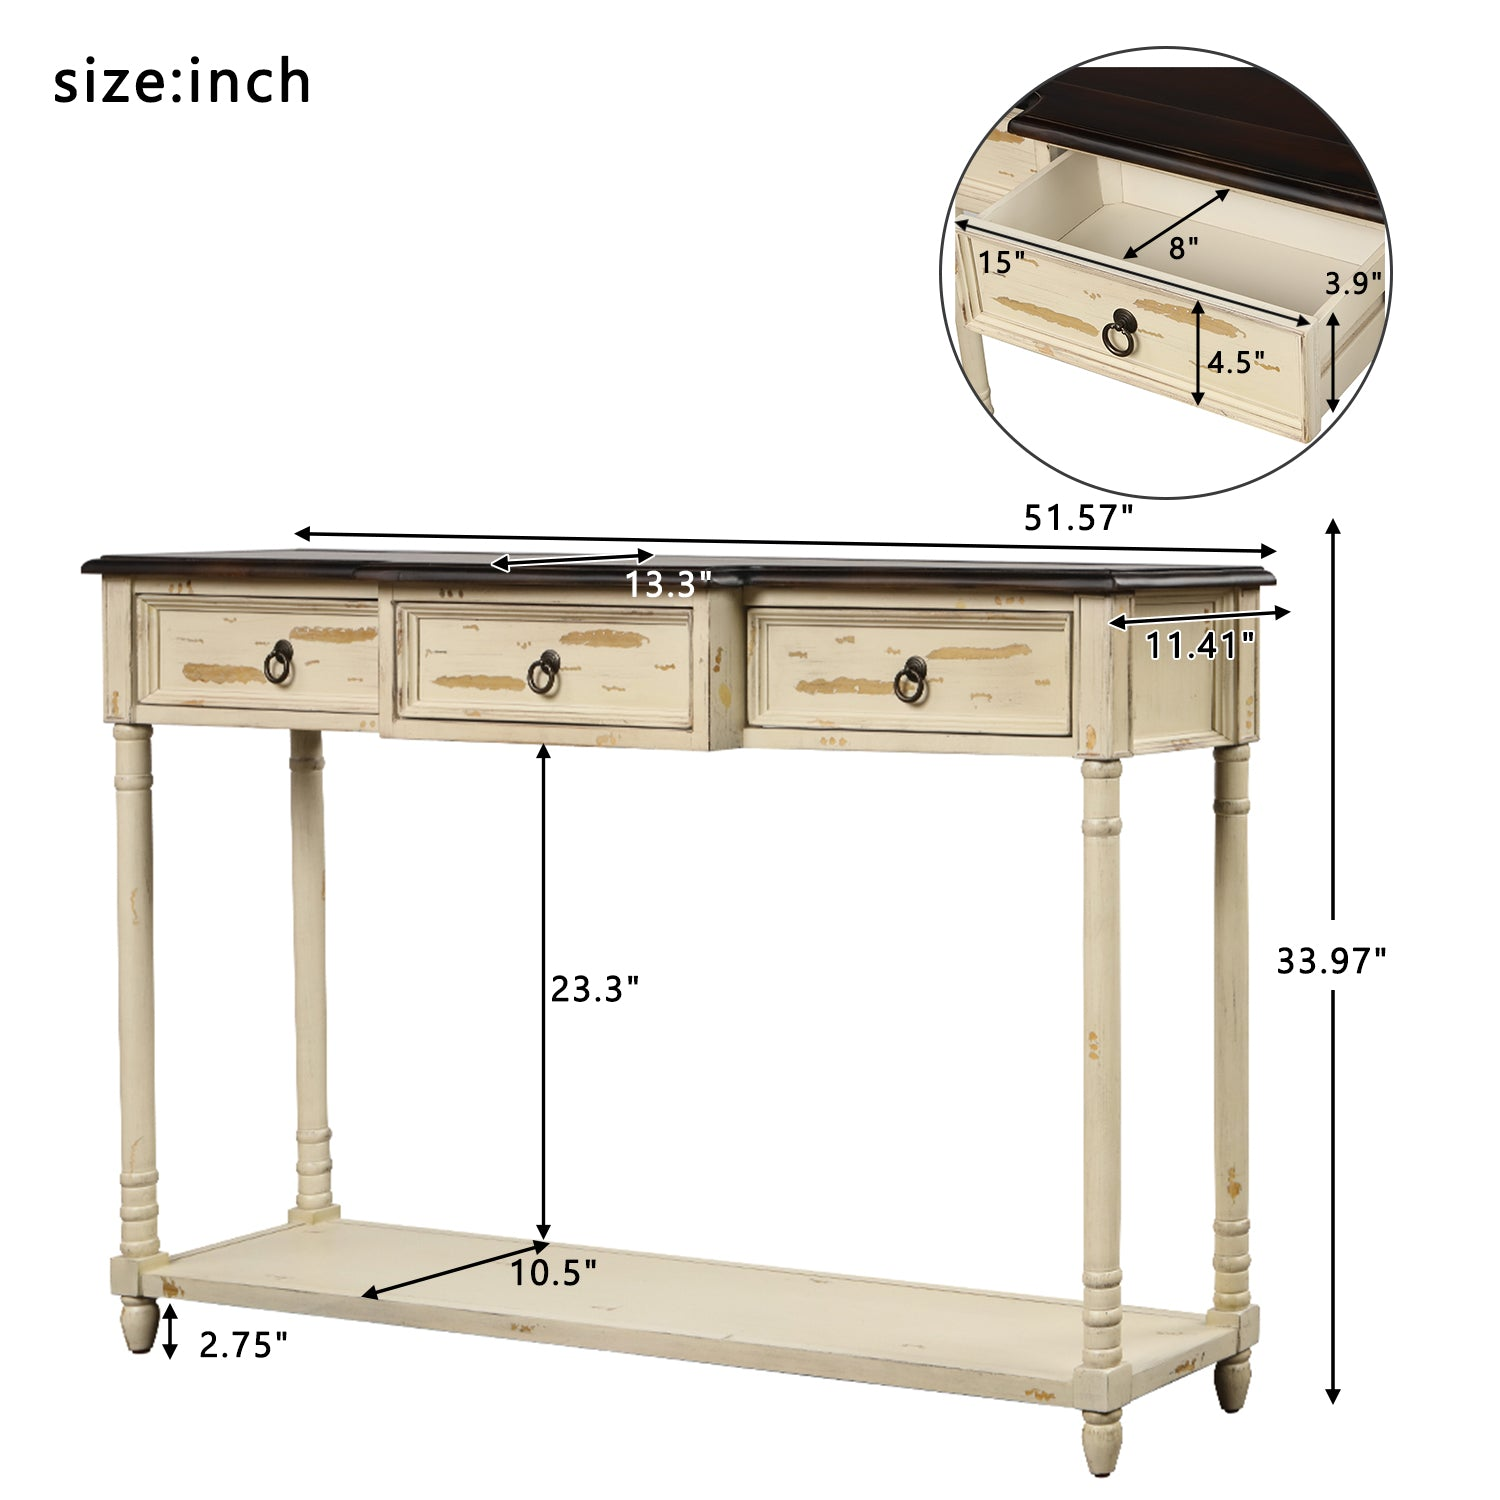 Gray Luxurious & Exquisite Design Console Table Sofa Table with Drawers for Entryway with Projecting Drawers and Long Shelf BH189574